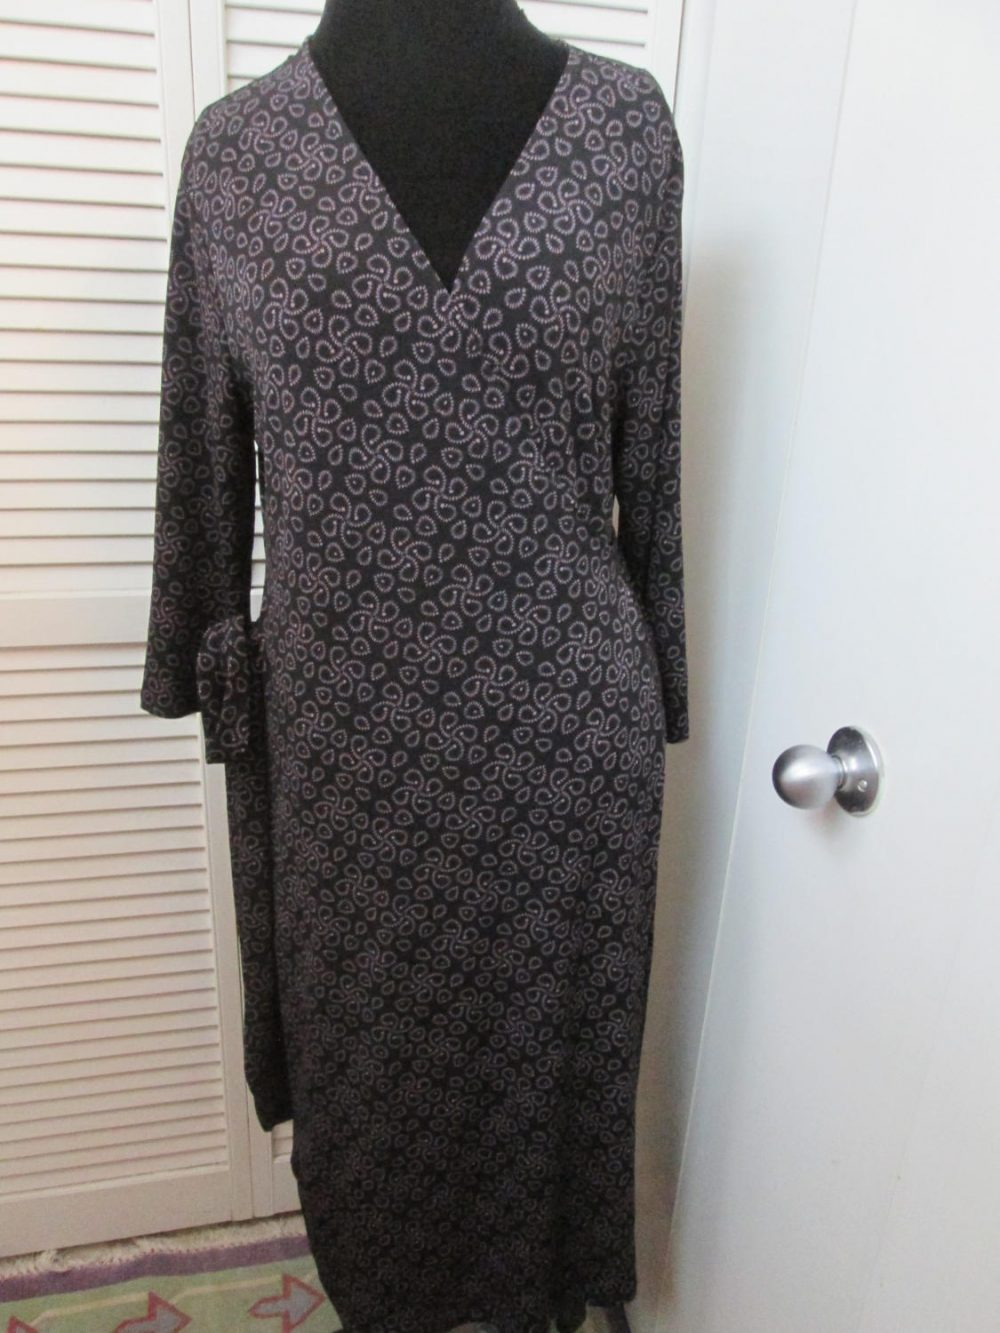 Classic Vintage Wrap Dress With Lots Of Stretch. Black Heavy Dark Lavender Pattern. Stretchy Polyester Timeless Flattering Dress